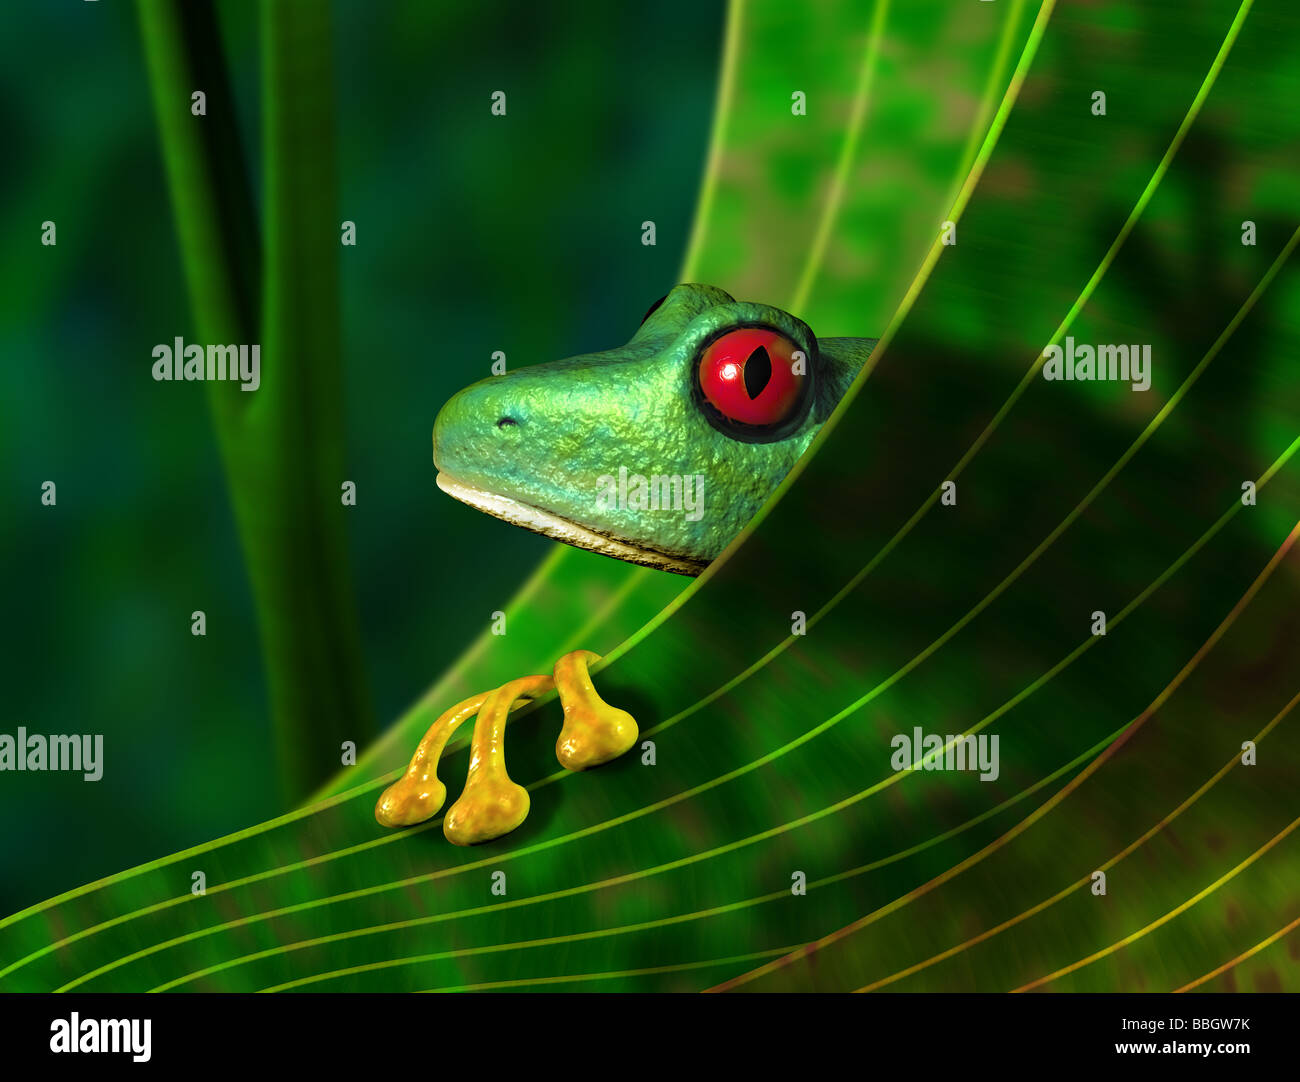 Illustration of an endangered red eyed tree frog peering from behind a leaf in the rainforest - Stock Image